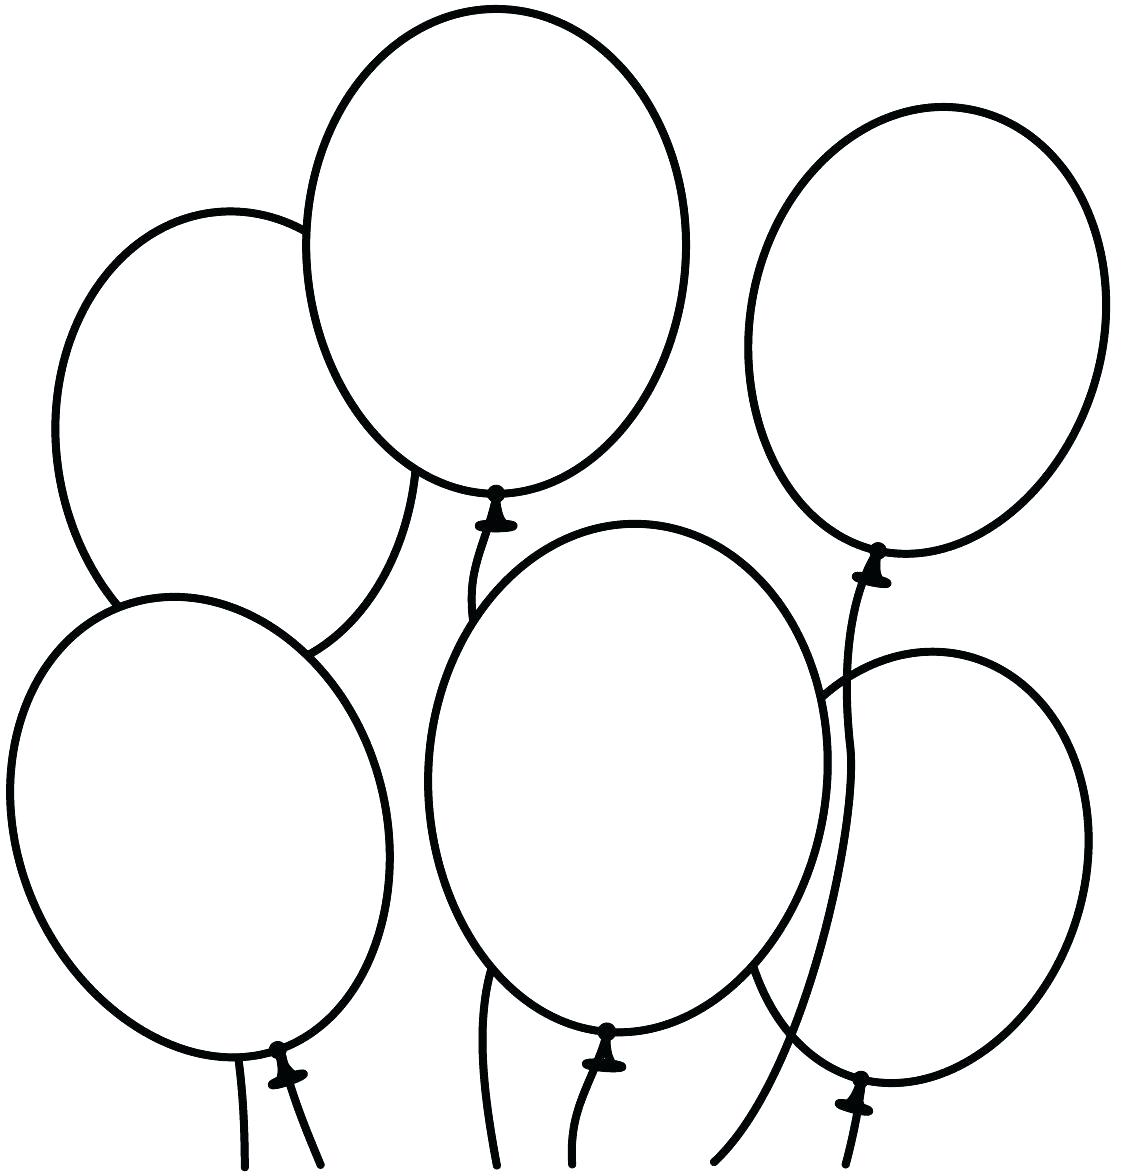 1136x1176 Printable Balloon Cut Outs Fresh Idea Coloring Pages